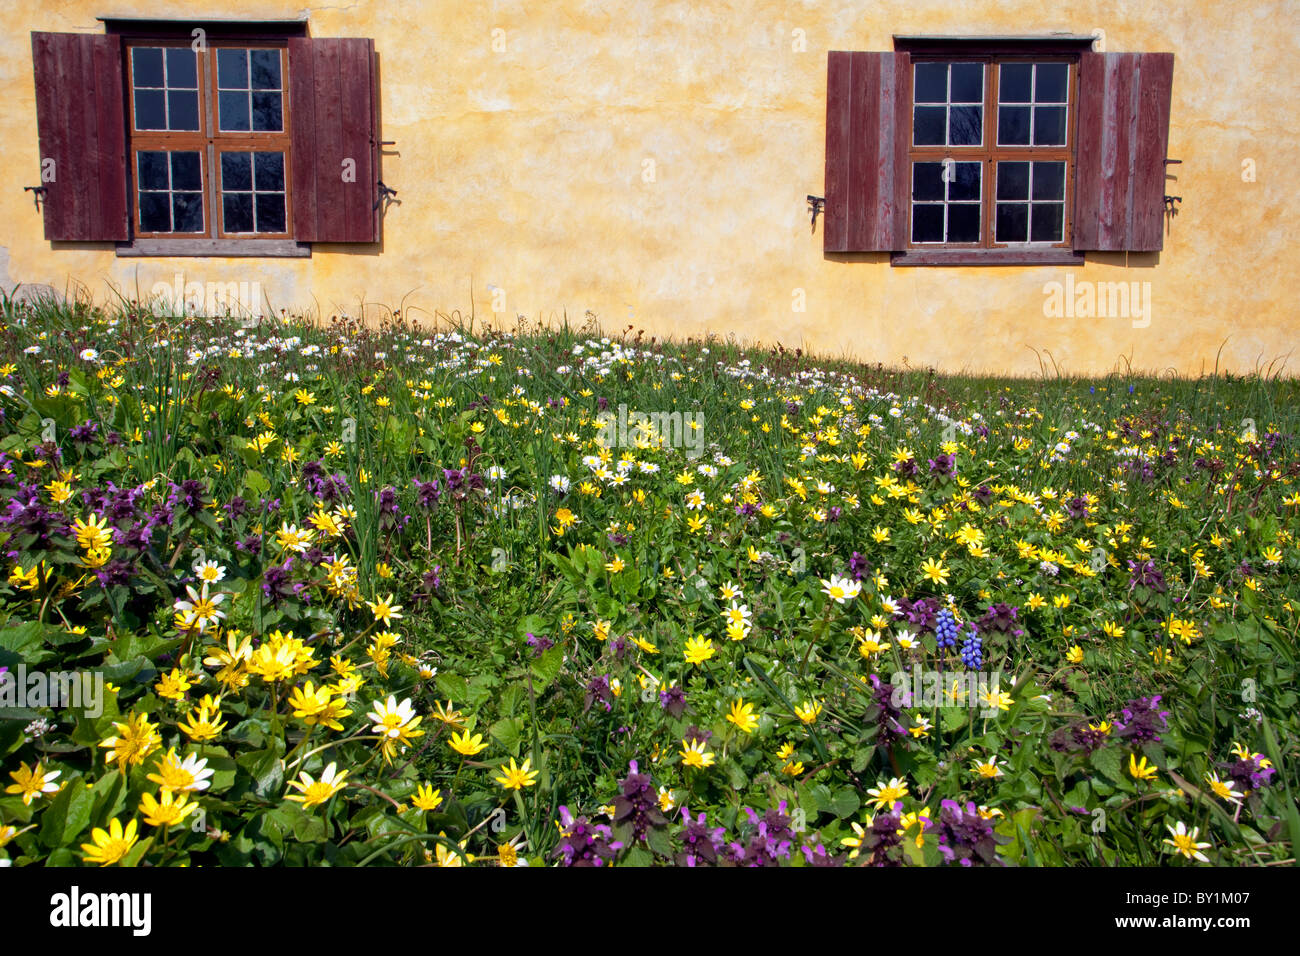 Sweden, Island of Gotland.   Spring flowers outside traditional wooden shuttered windows - Stock Image